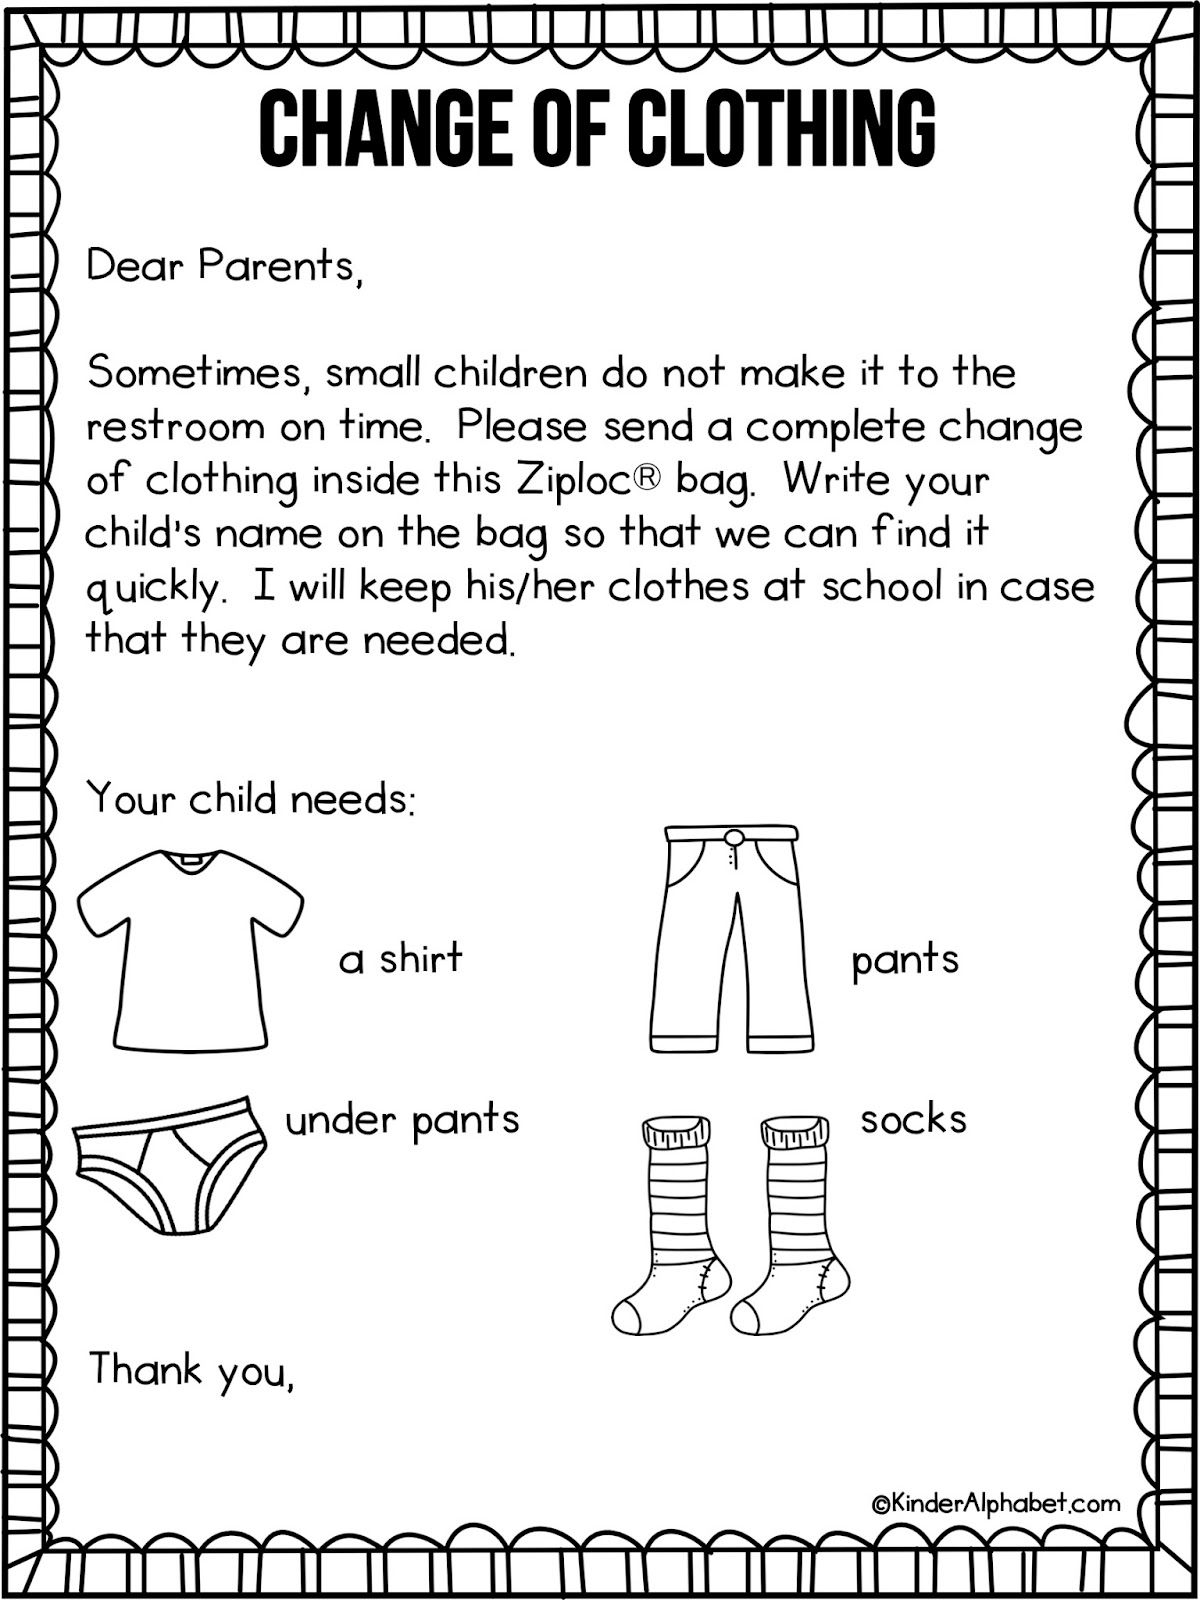 Kindergarten Welcome Letter Template - Parent Letter for Change Of Clothing Free From Kinderalphabet Via